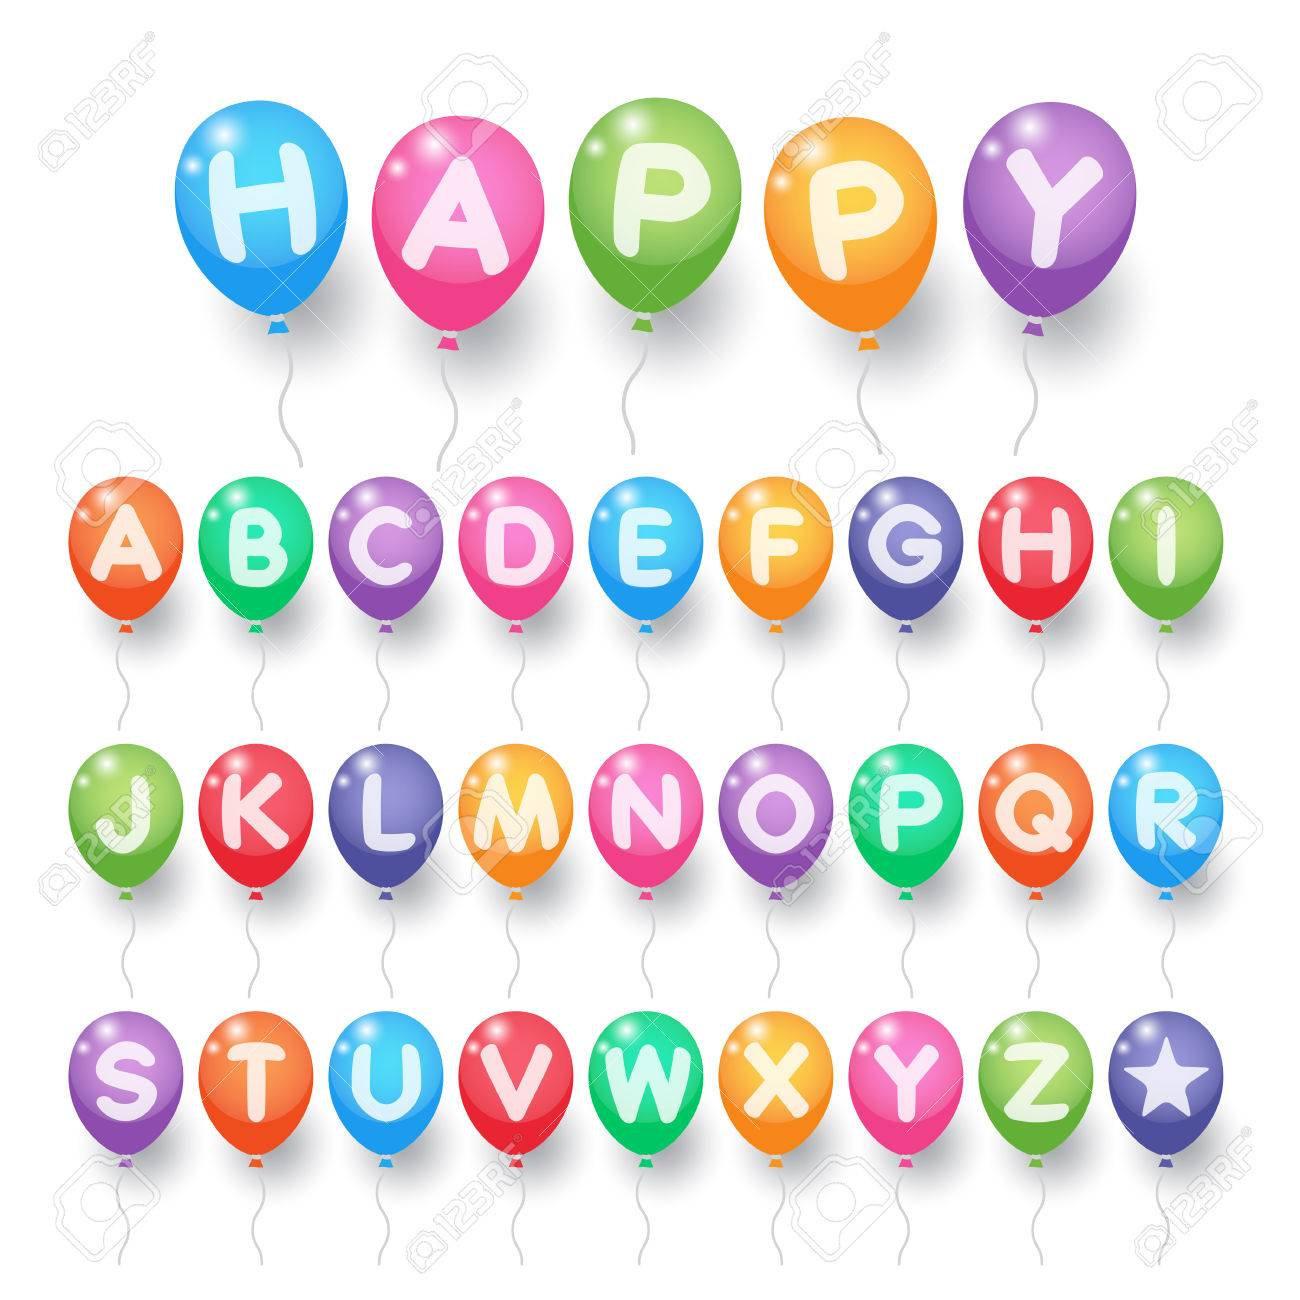 Colorful Capital Alphabet Letter A To Z Balloons On White Background For Birthday